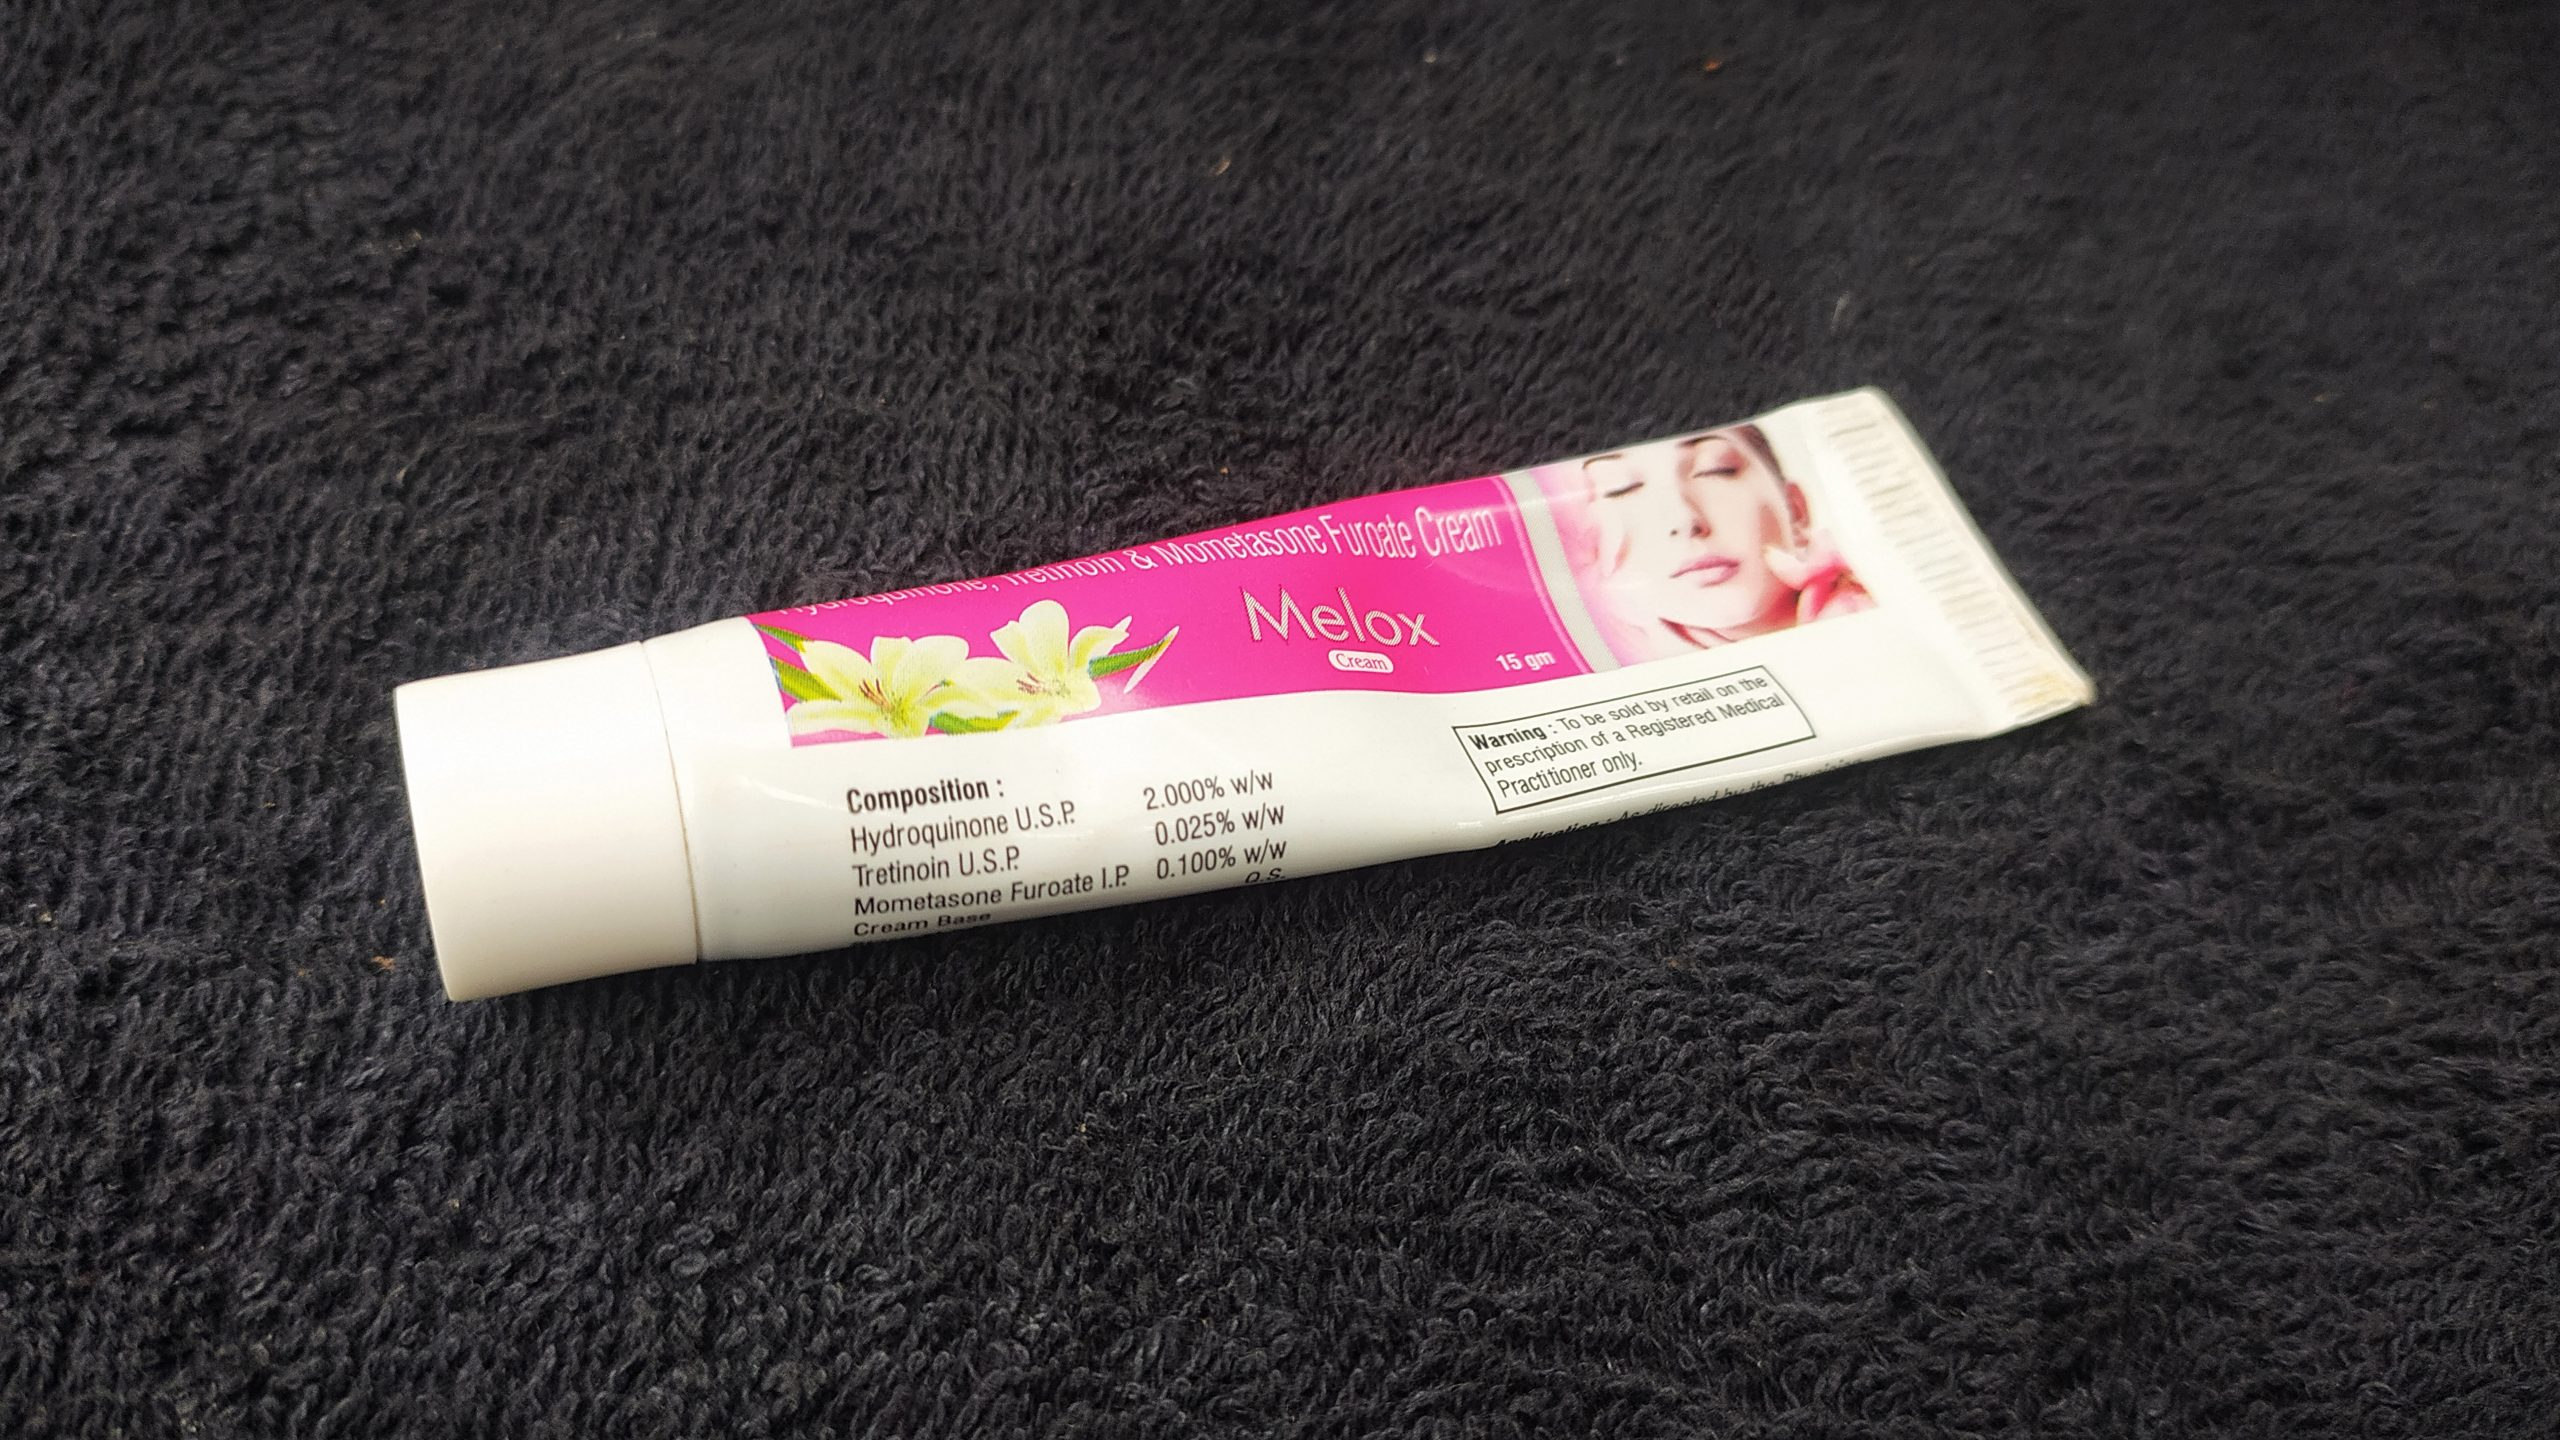 A skin care product